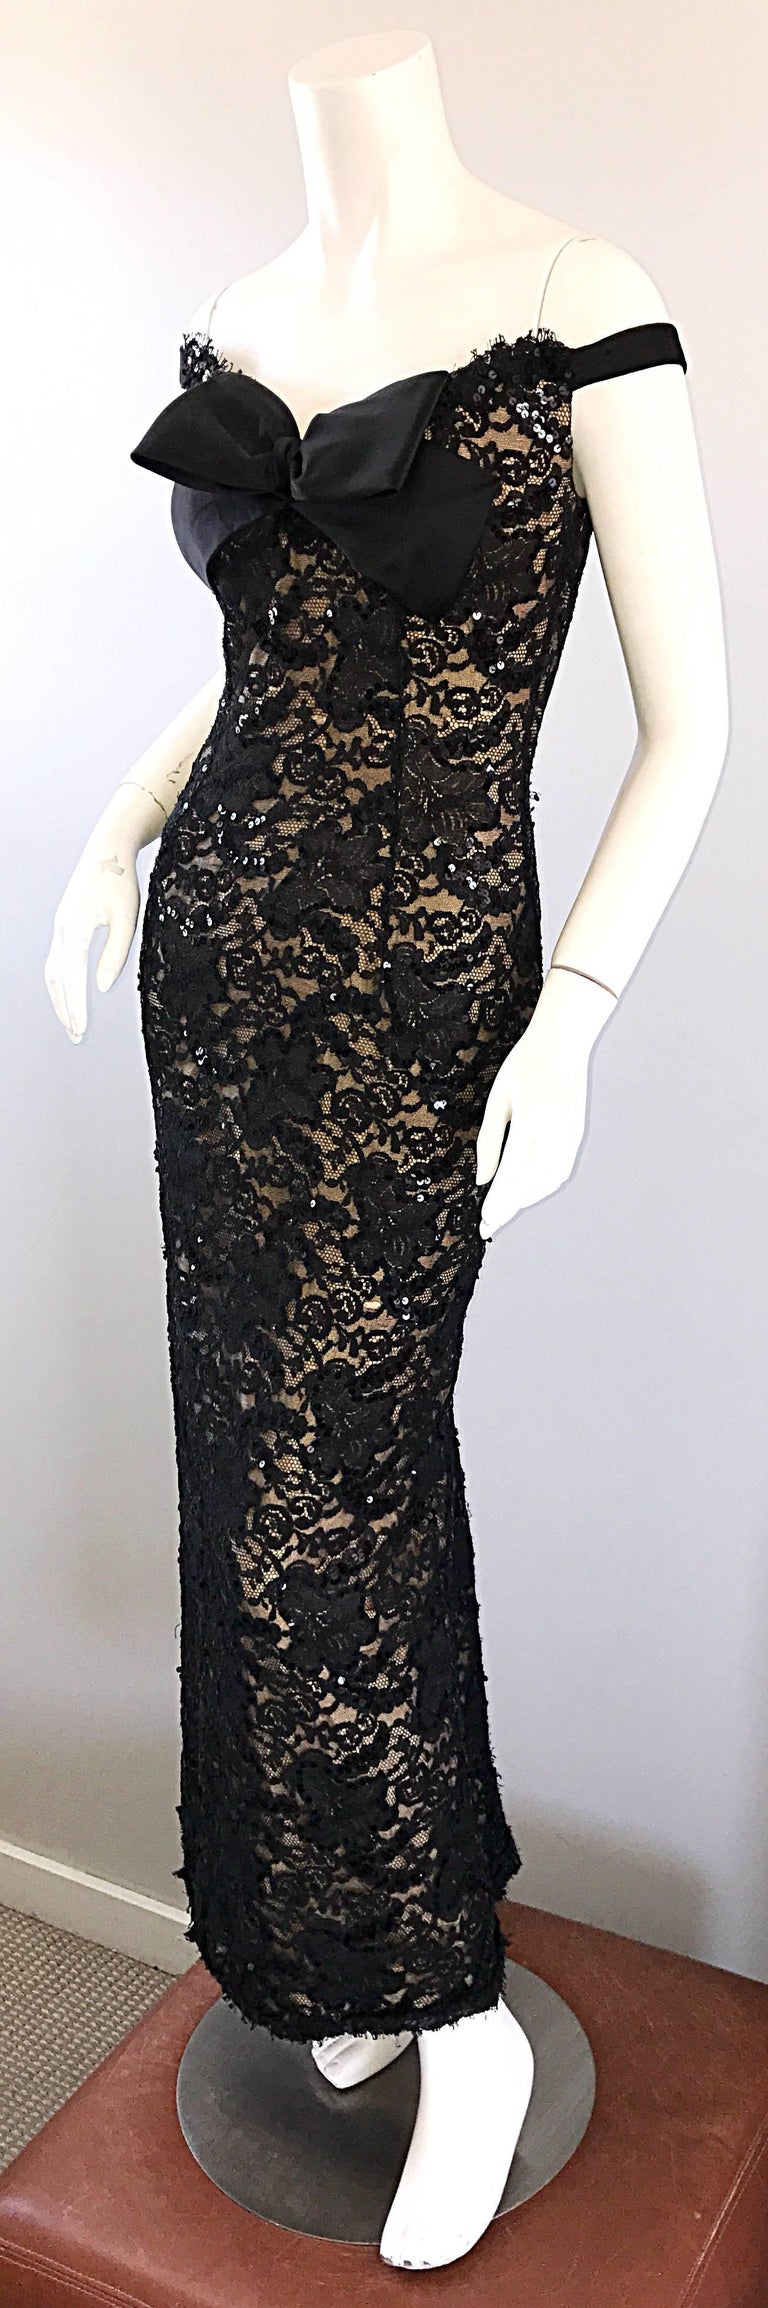 Vintage Bob Mackie Black Lace Sequin Size 8 1990s 90s Evening Off Shoulder Gown  For Sale 2